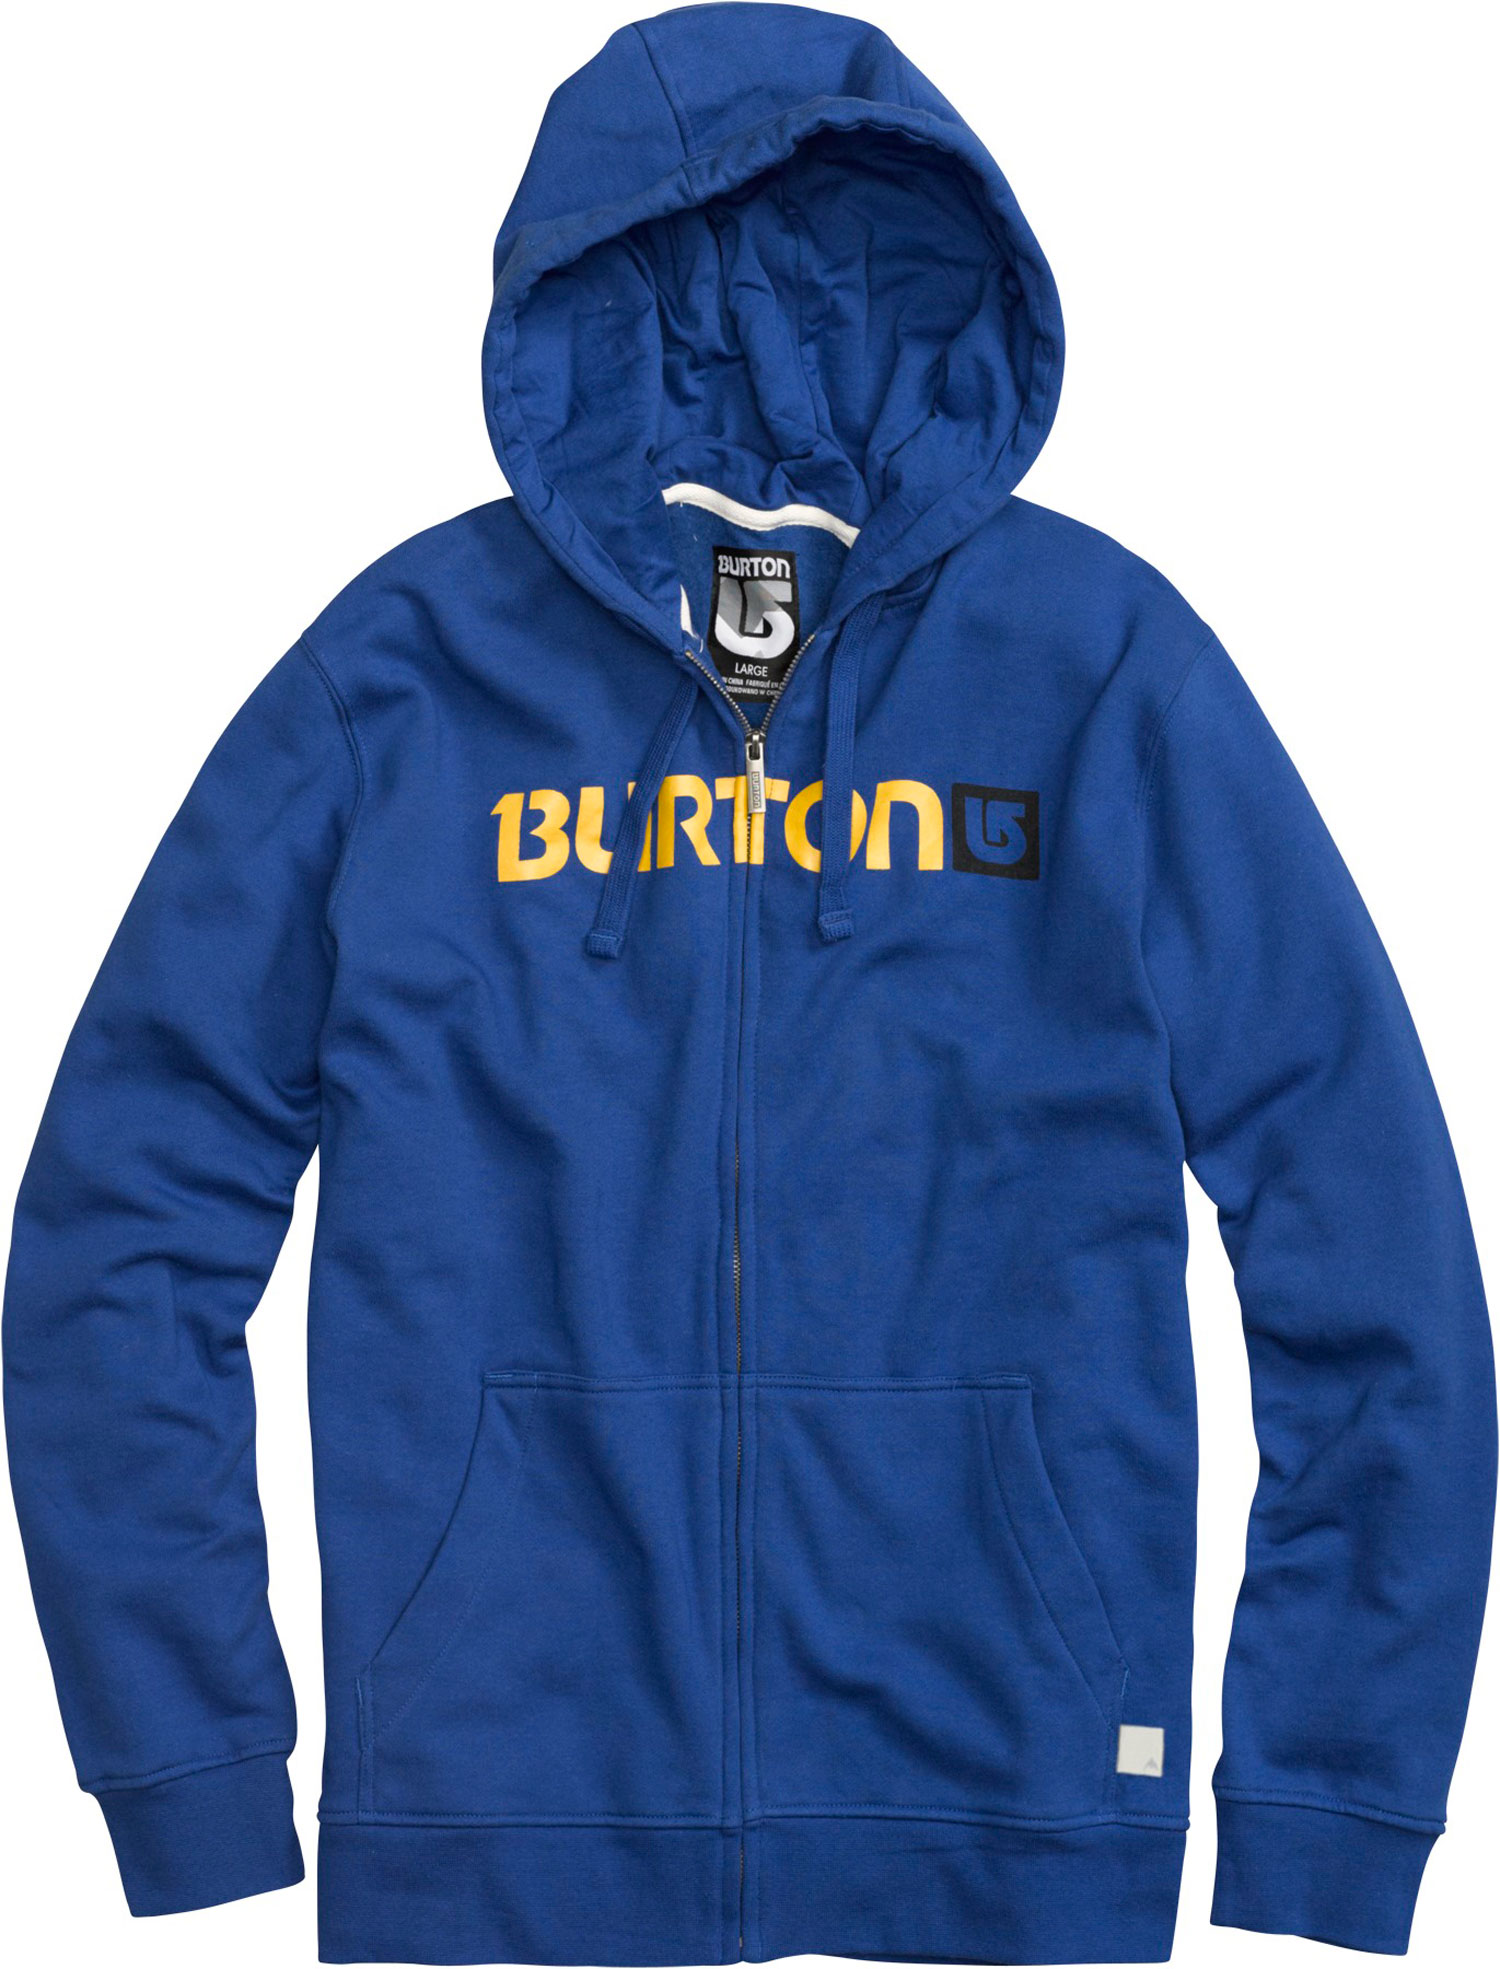 Snowboard The Burton Logo Horizontal Fullzip Hoodie is a lightweight top great for wearing all alone or tossing on under a coat in colder weather. This 80% cotton 20% polyester blend hoodie is soft and warm and with the handwarming kangaroo pocket you can keep your things safe and digits toasty. An interior media stash you can listen to your tunes on the go with ease. So if you need a nice looking and reliable top the Logo Horizontal Hoodie by Burton is the way to go.Key Features of the Burton Logo Horizontal Fullzip Hoodie:  80% Cotton, 20% Polyester, 300G Fleece  screen Print on Chest  regular Fit - $35.95